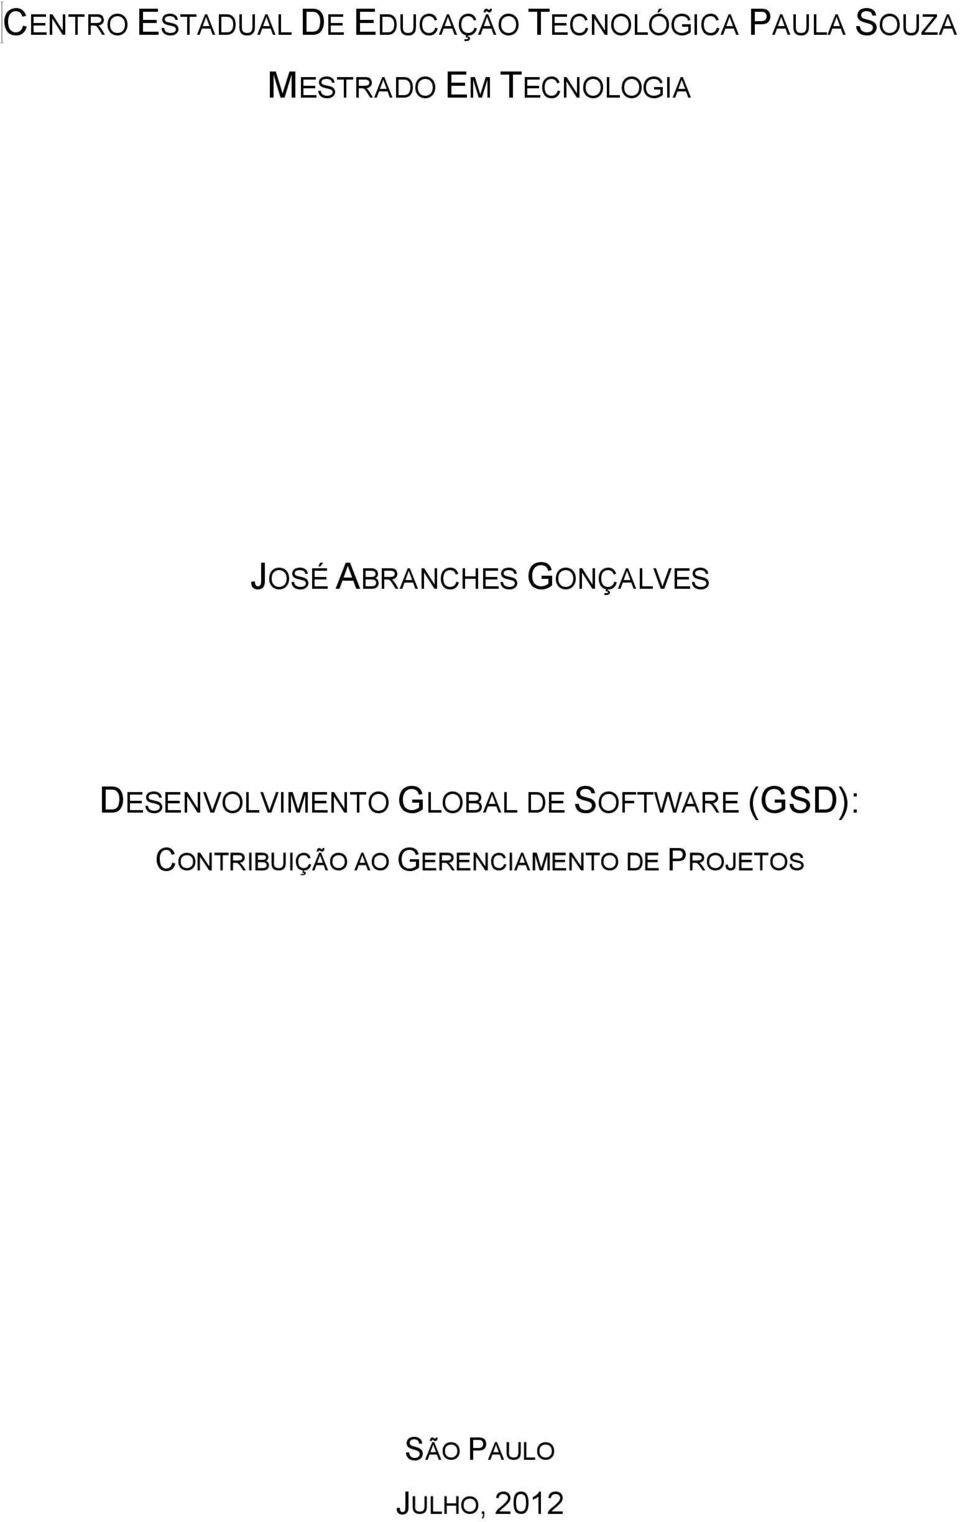 DESENVOLVIMENTO GLOBAL DE SOFTWARE (GSD):